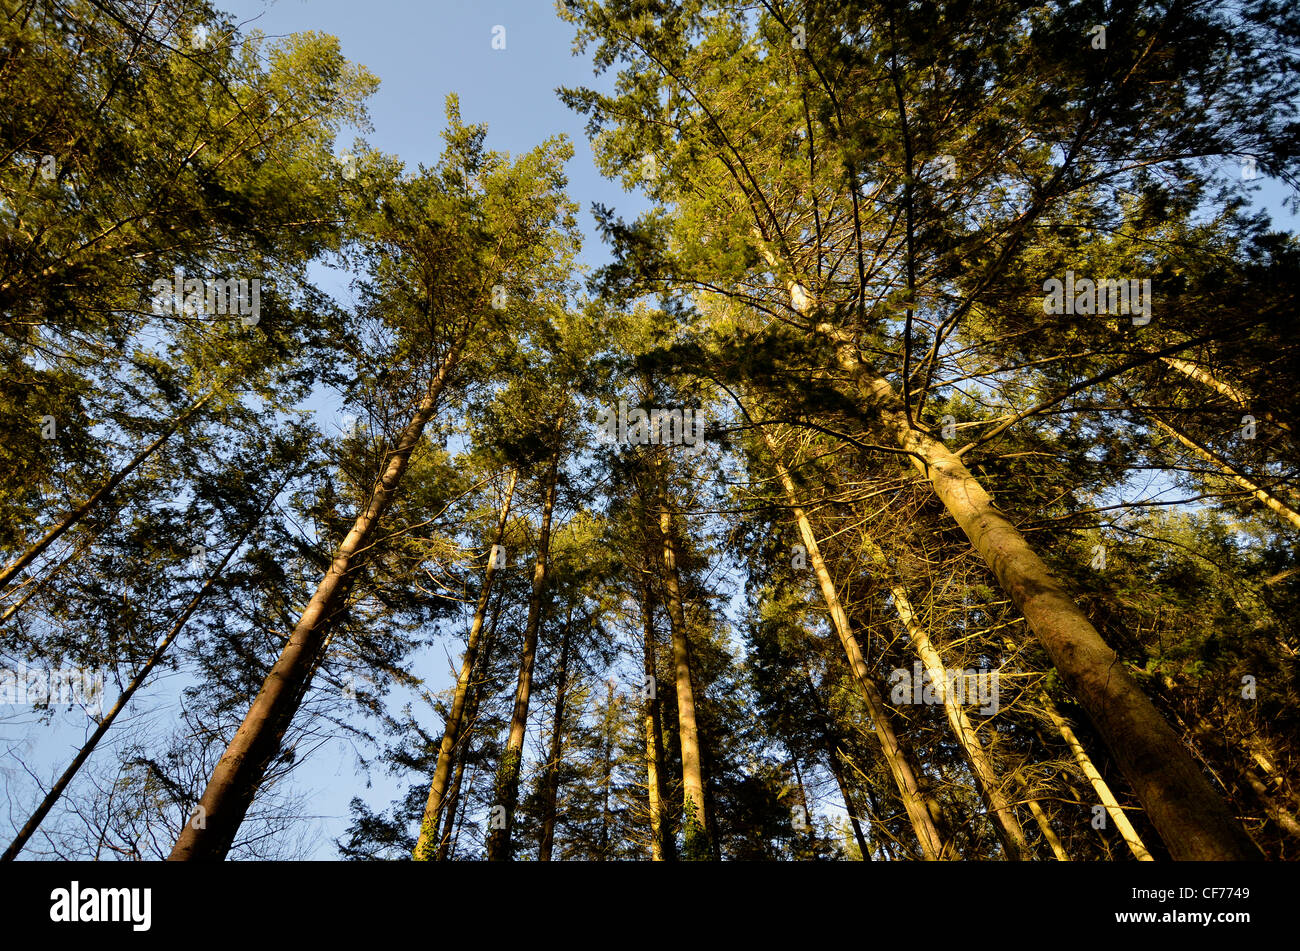 Low angle view of pine/coniferous trees. - Stock Image